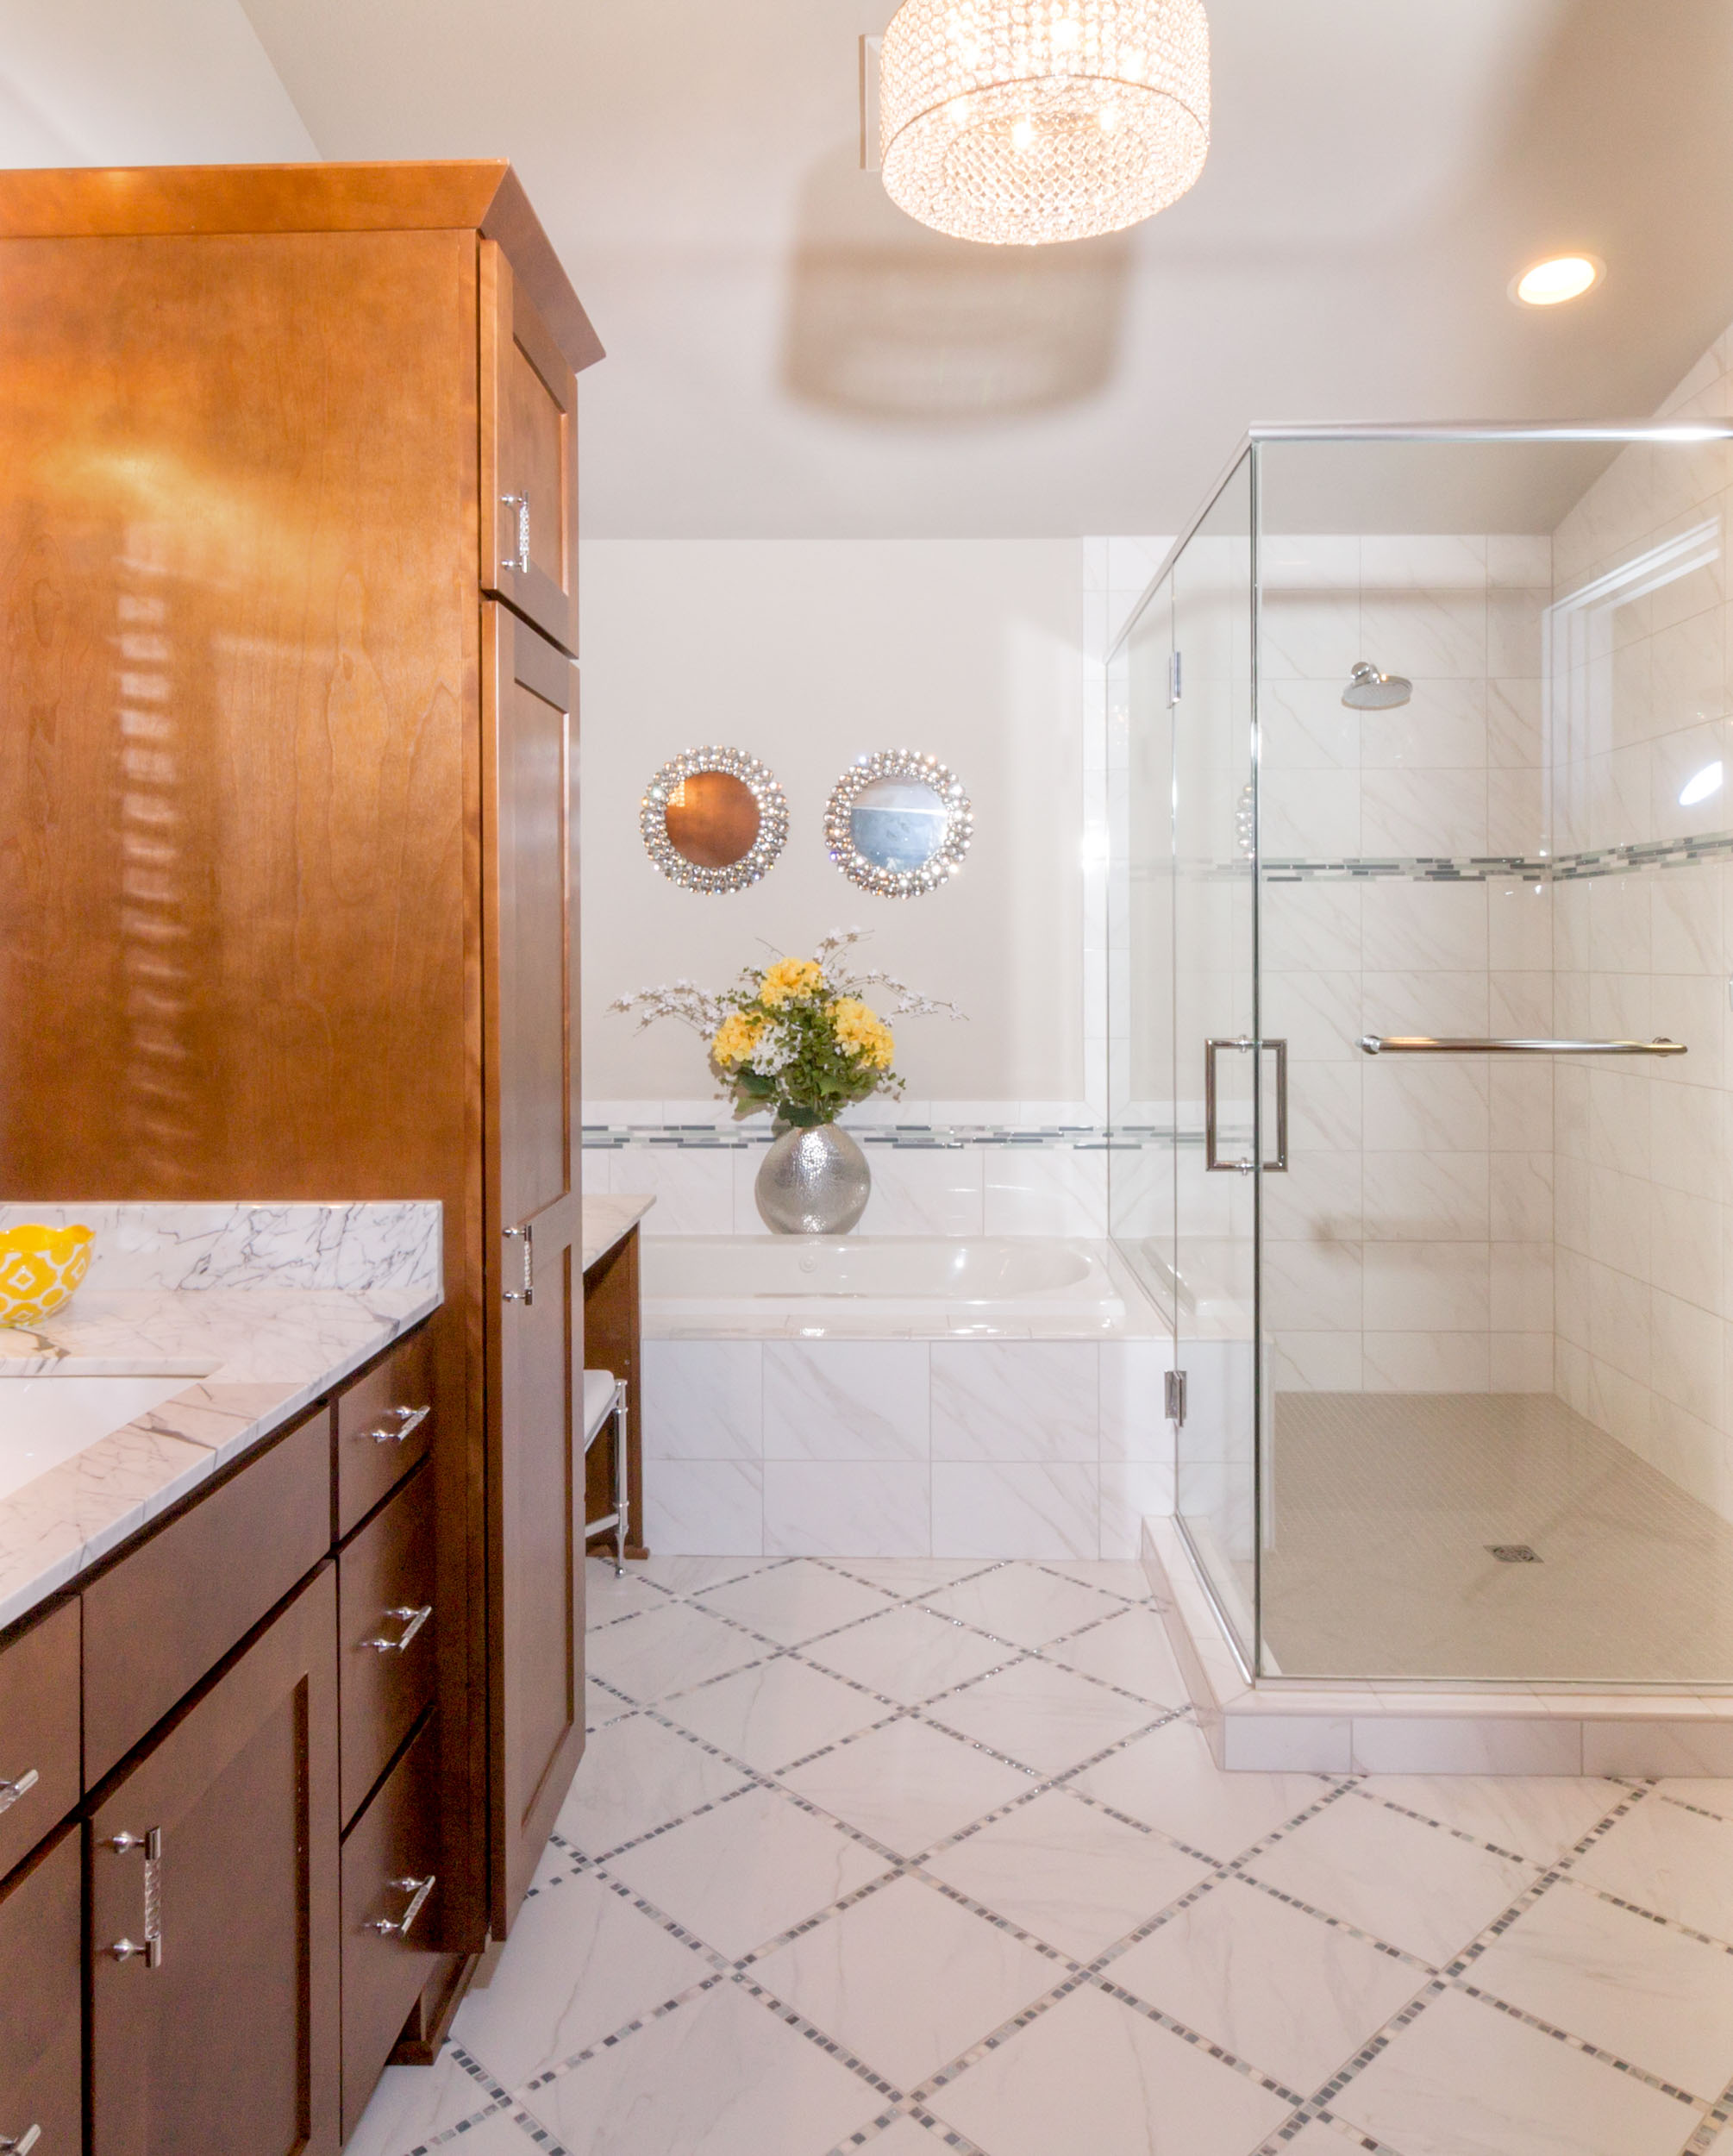 A whole house makeover with two master suites - This whole house remodel includes a second full bathroom prepared to serve as en-suite for long term care of a family member.